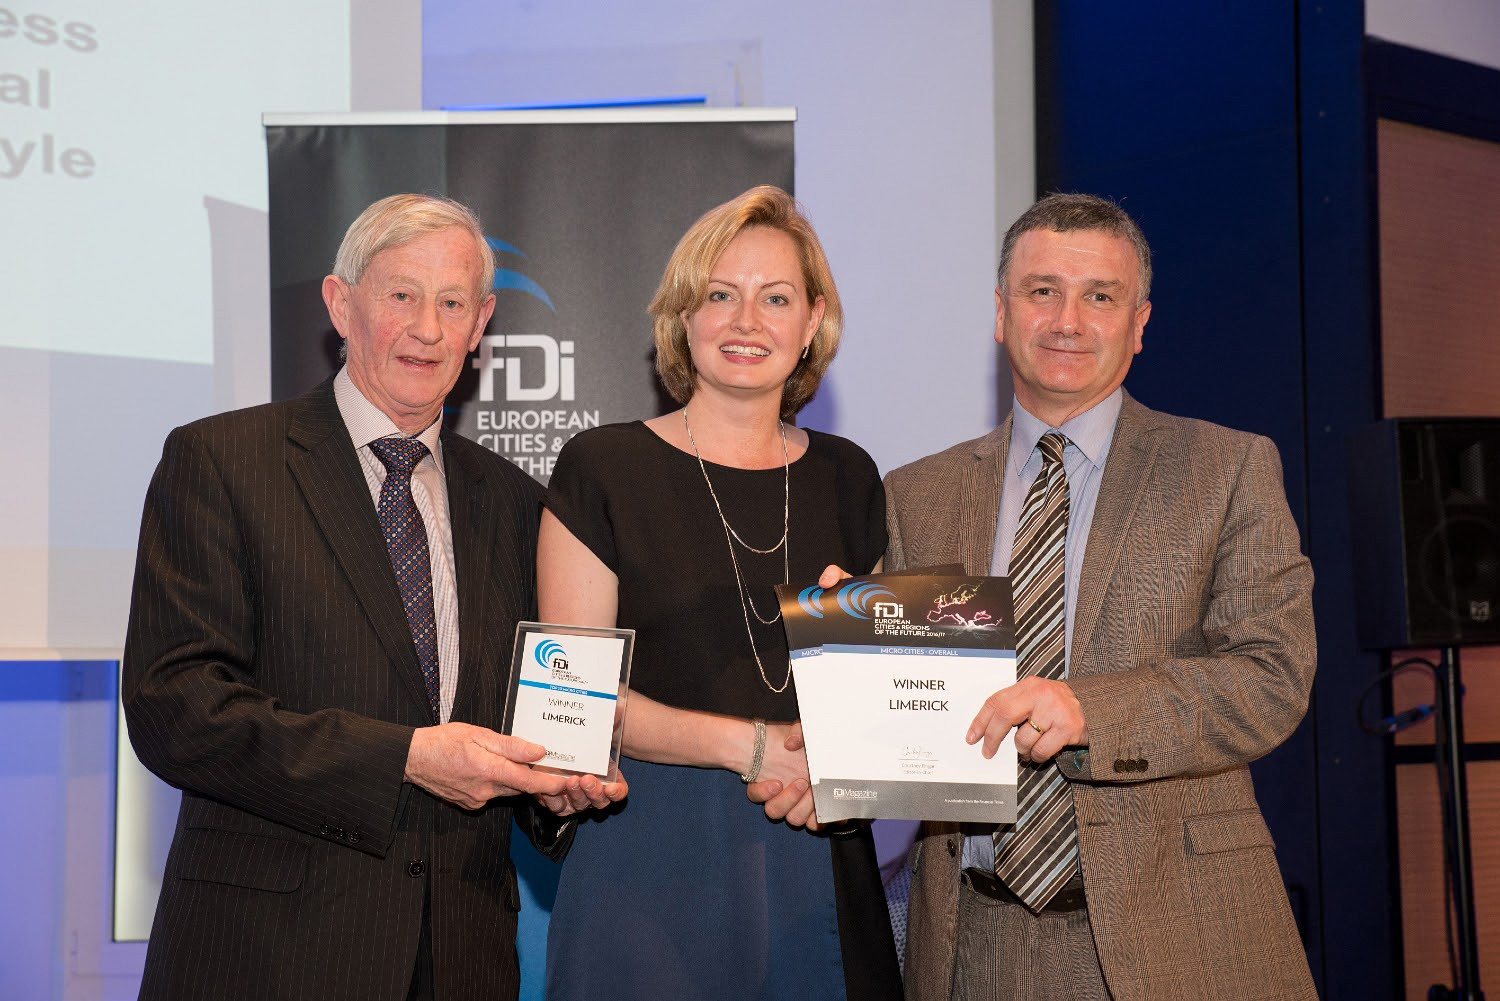 Courtney Fingar, editor-in-chief, FDi magazine presents Cllr Noel Gleeson and Pat Fitzgerald, Limerick City and County Council, with Limerick's European City of the Future award.